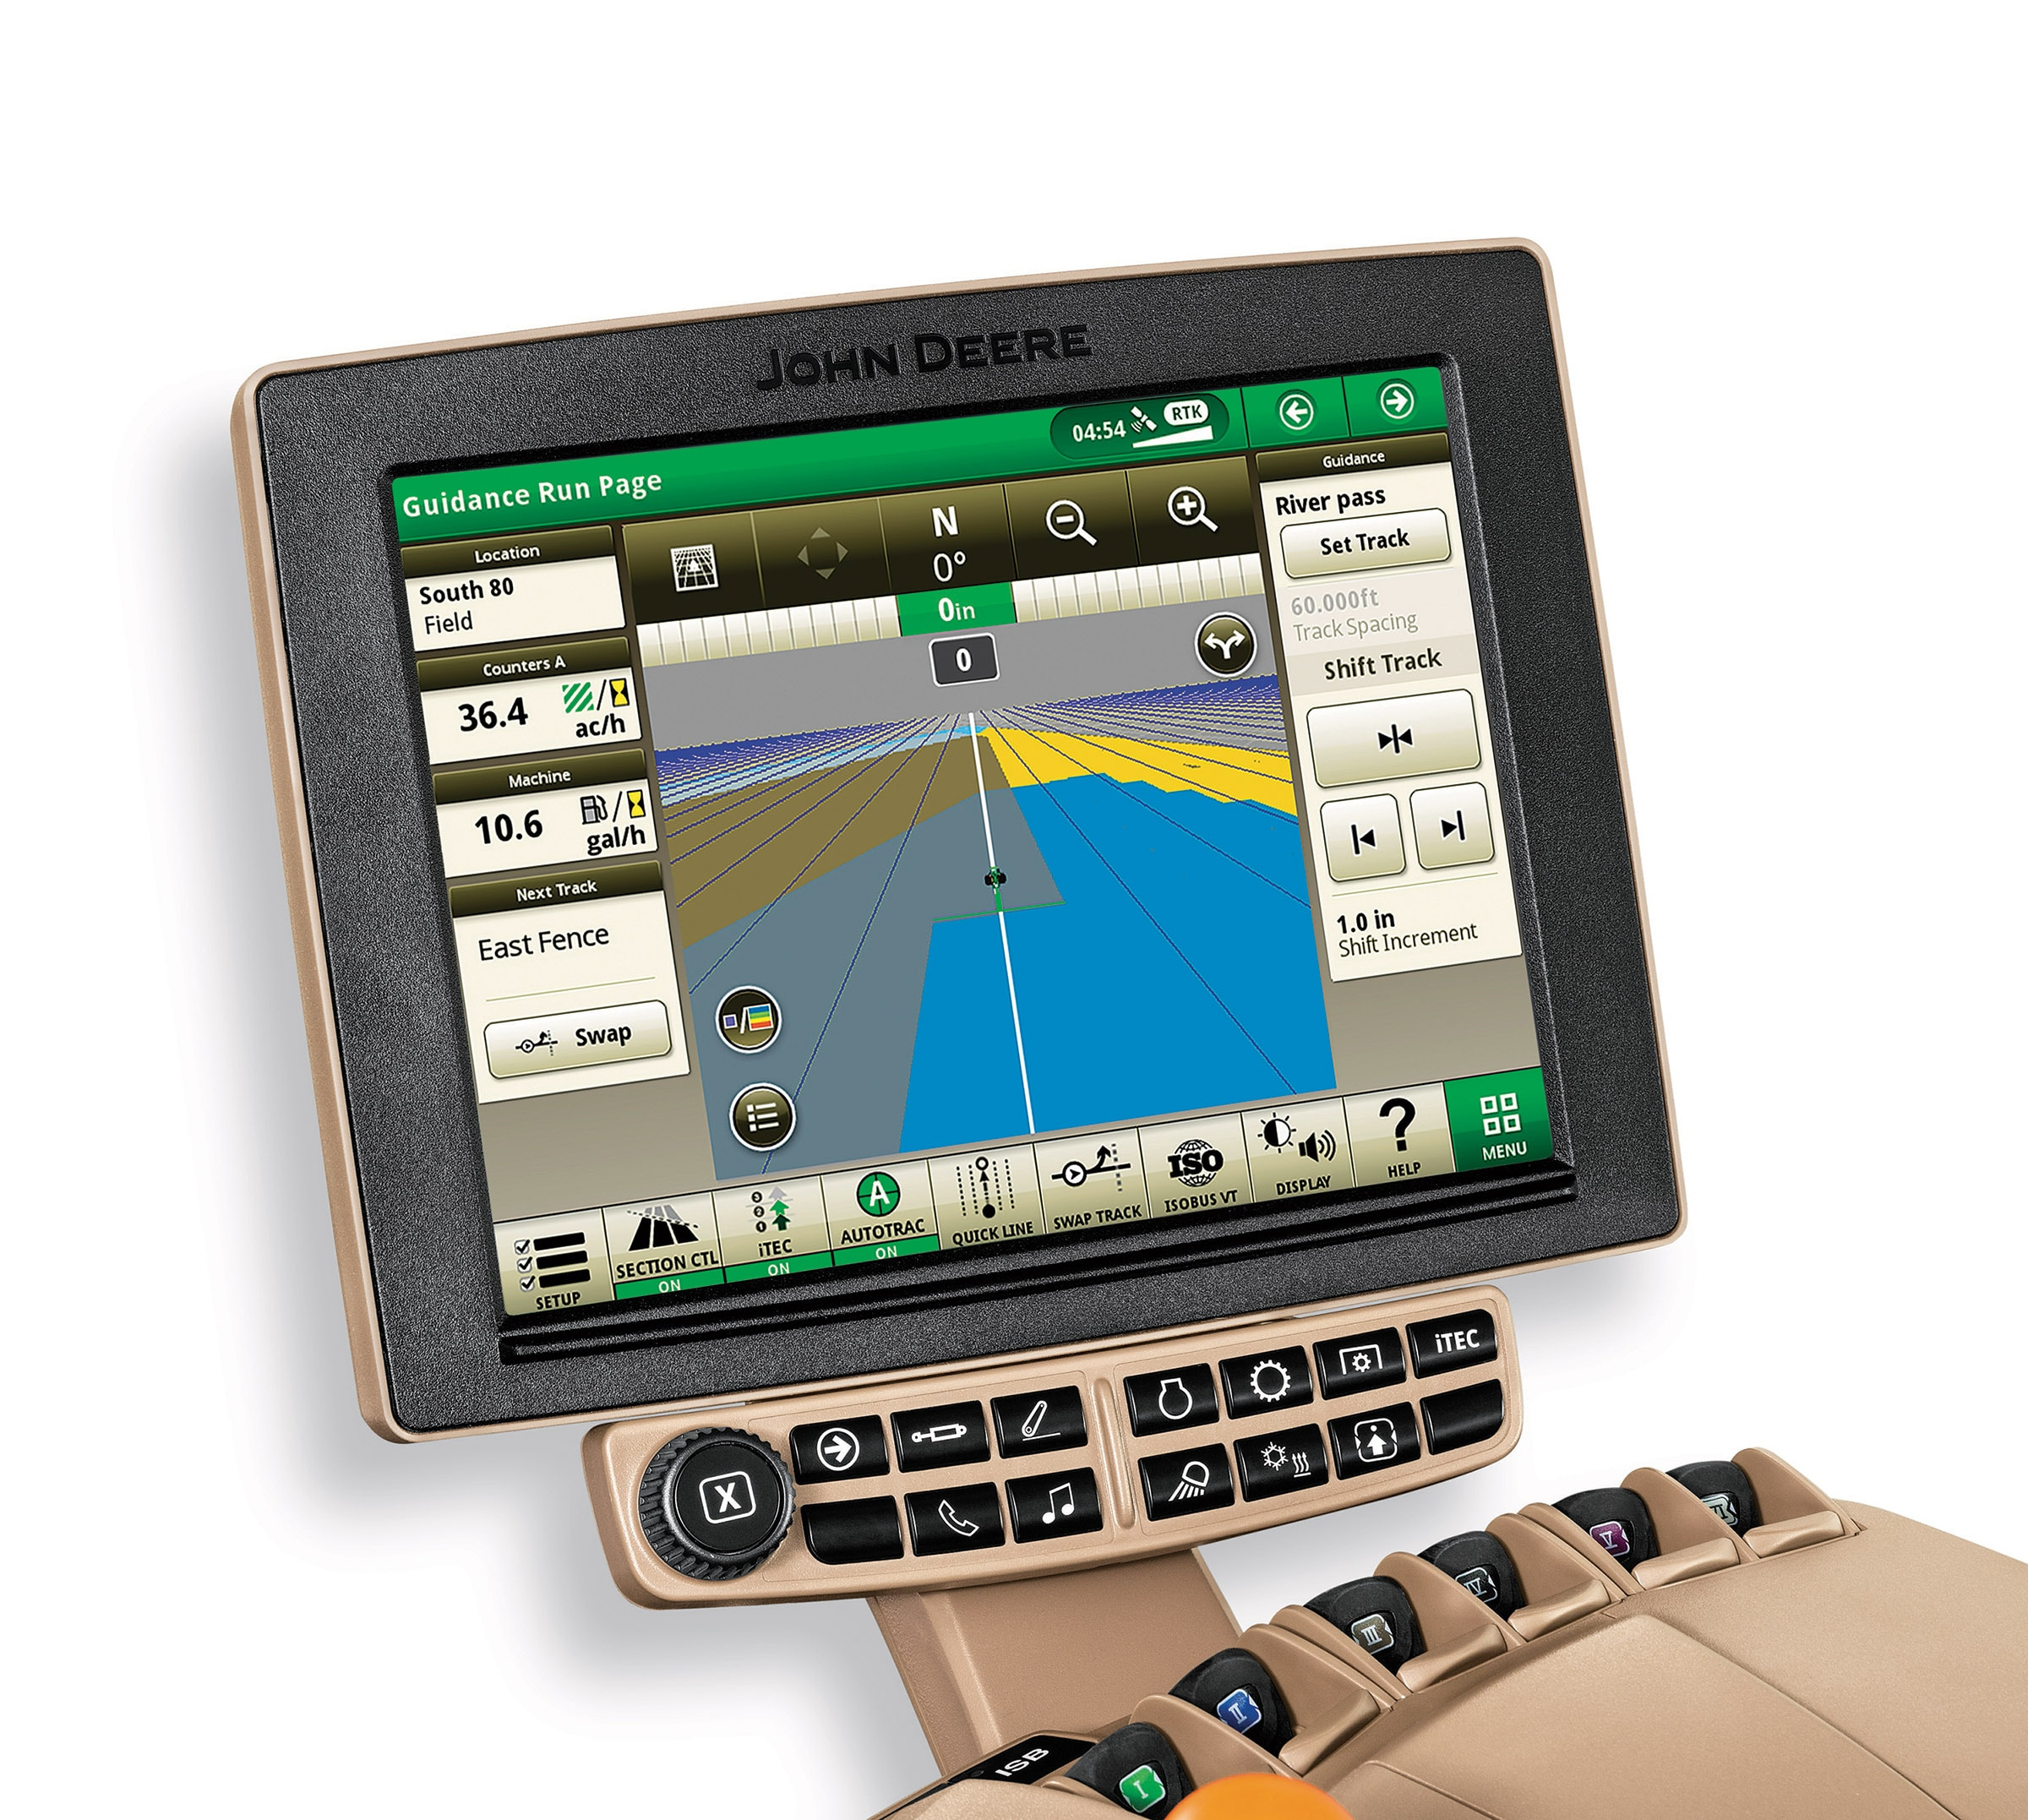 Display screen demonstrating John Deere application